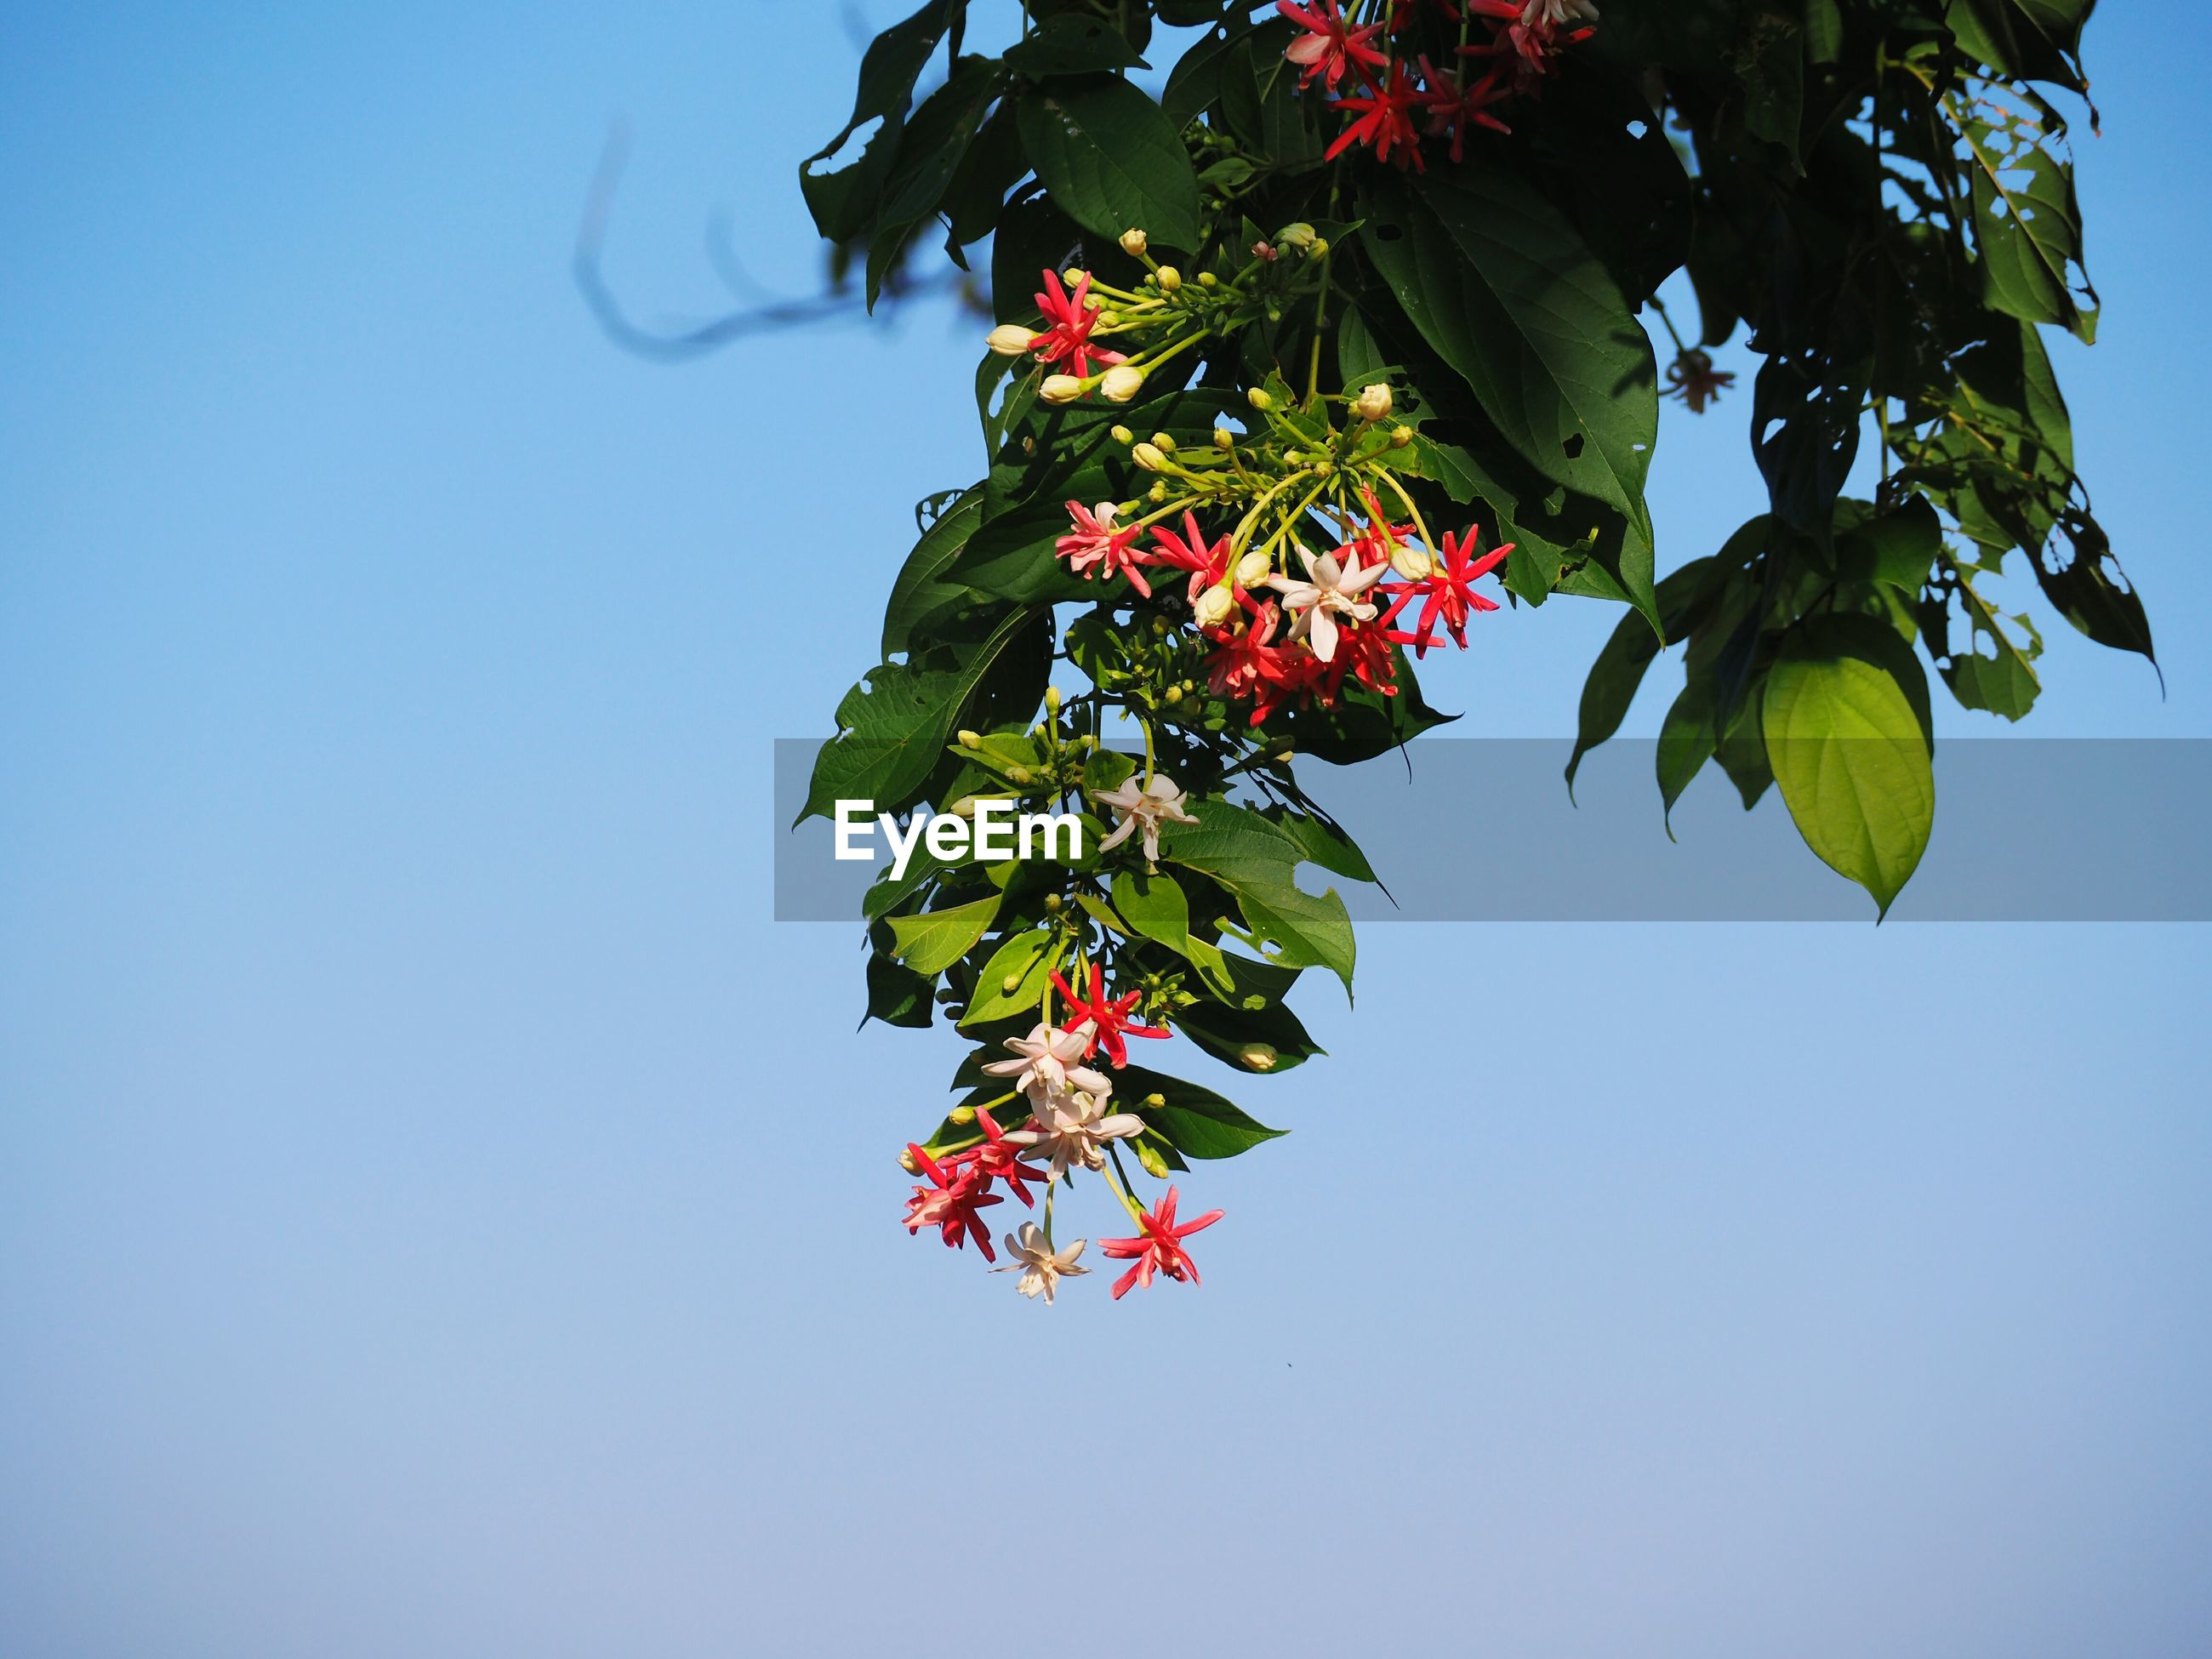 LOW ANGLE VIEW OF RED FLOWERING PLANT AGAINST BLUE SKY